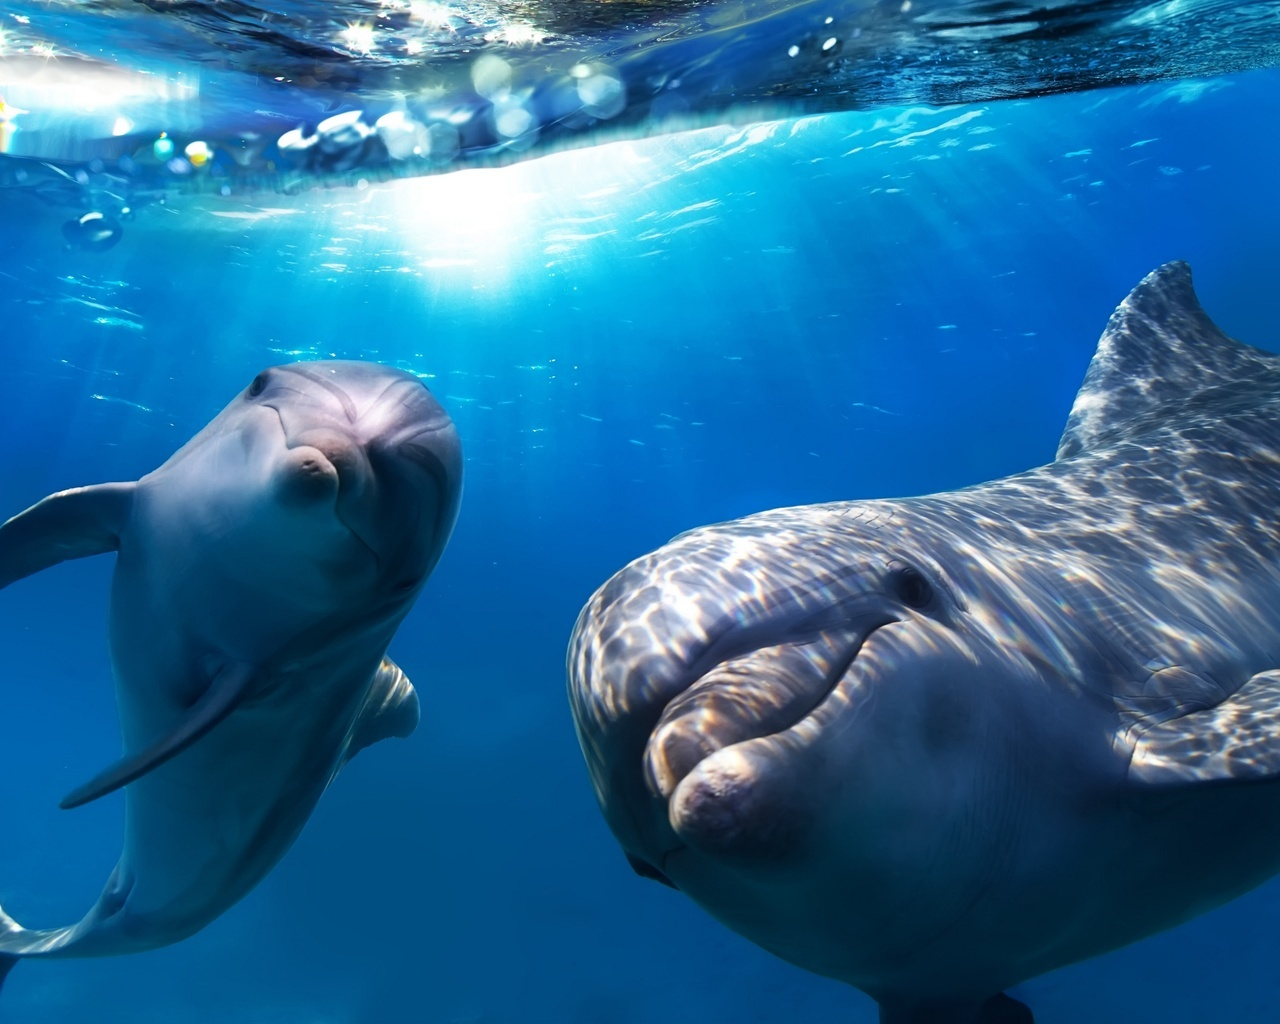 16102 download wallpaper Animals, Dolfins, Sea, Fishes screensavers and pictures for free